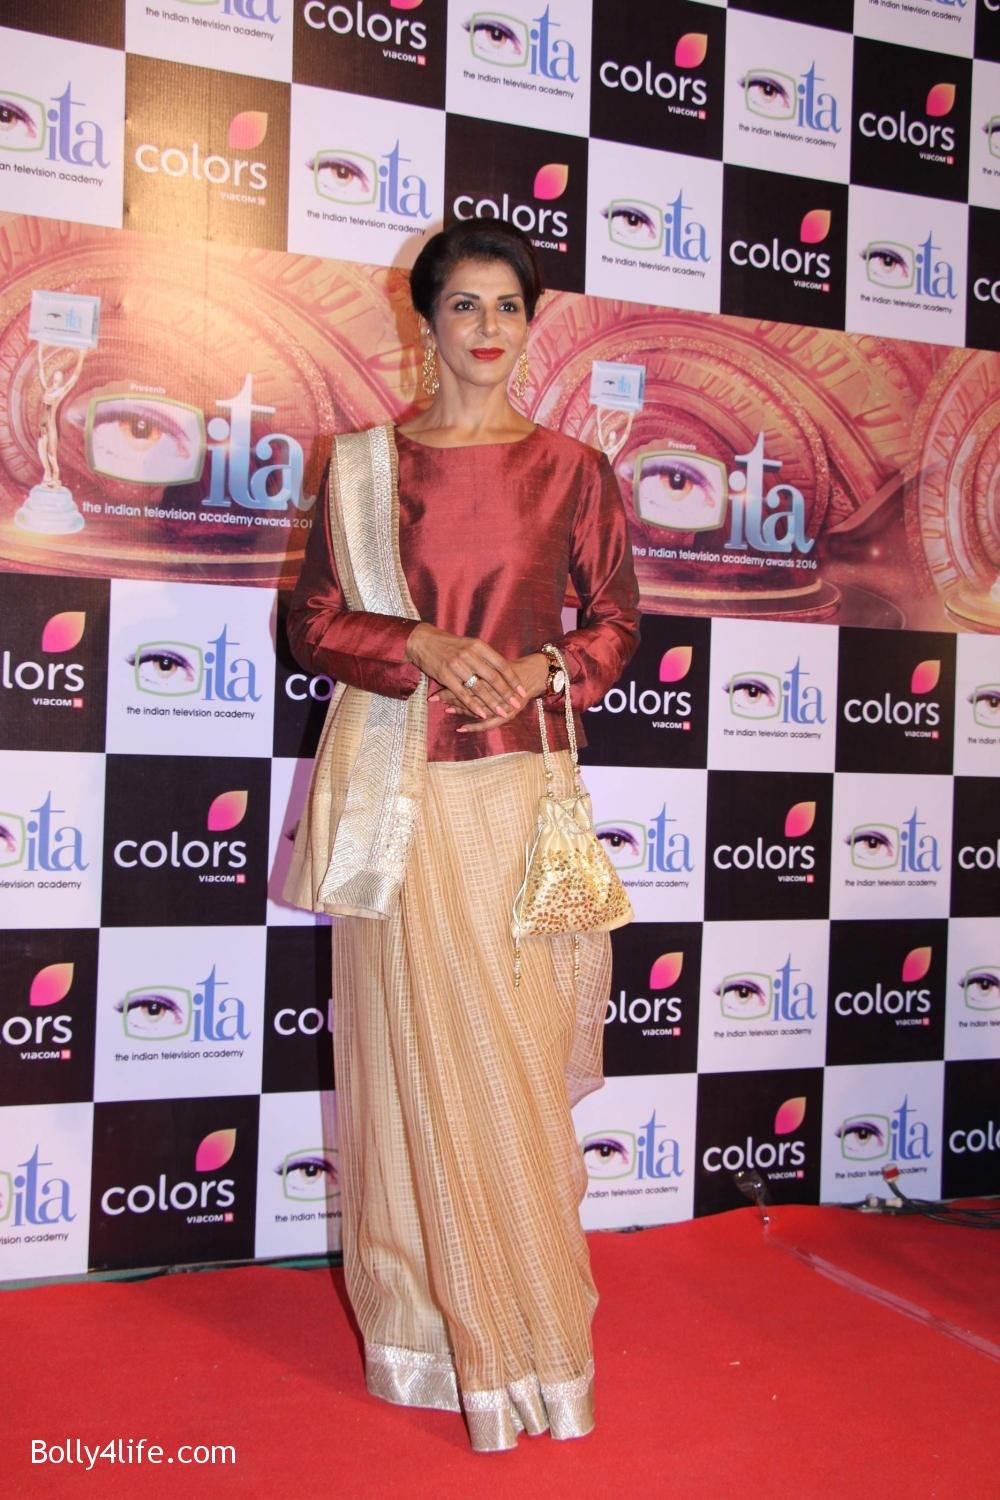 16th-Indian-Television-Academy-Awards-2016-7.jpg